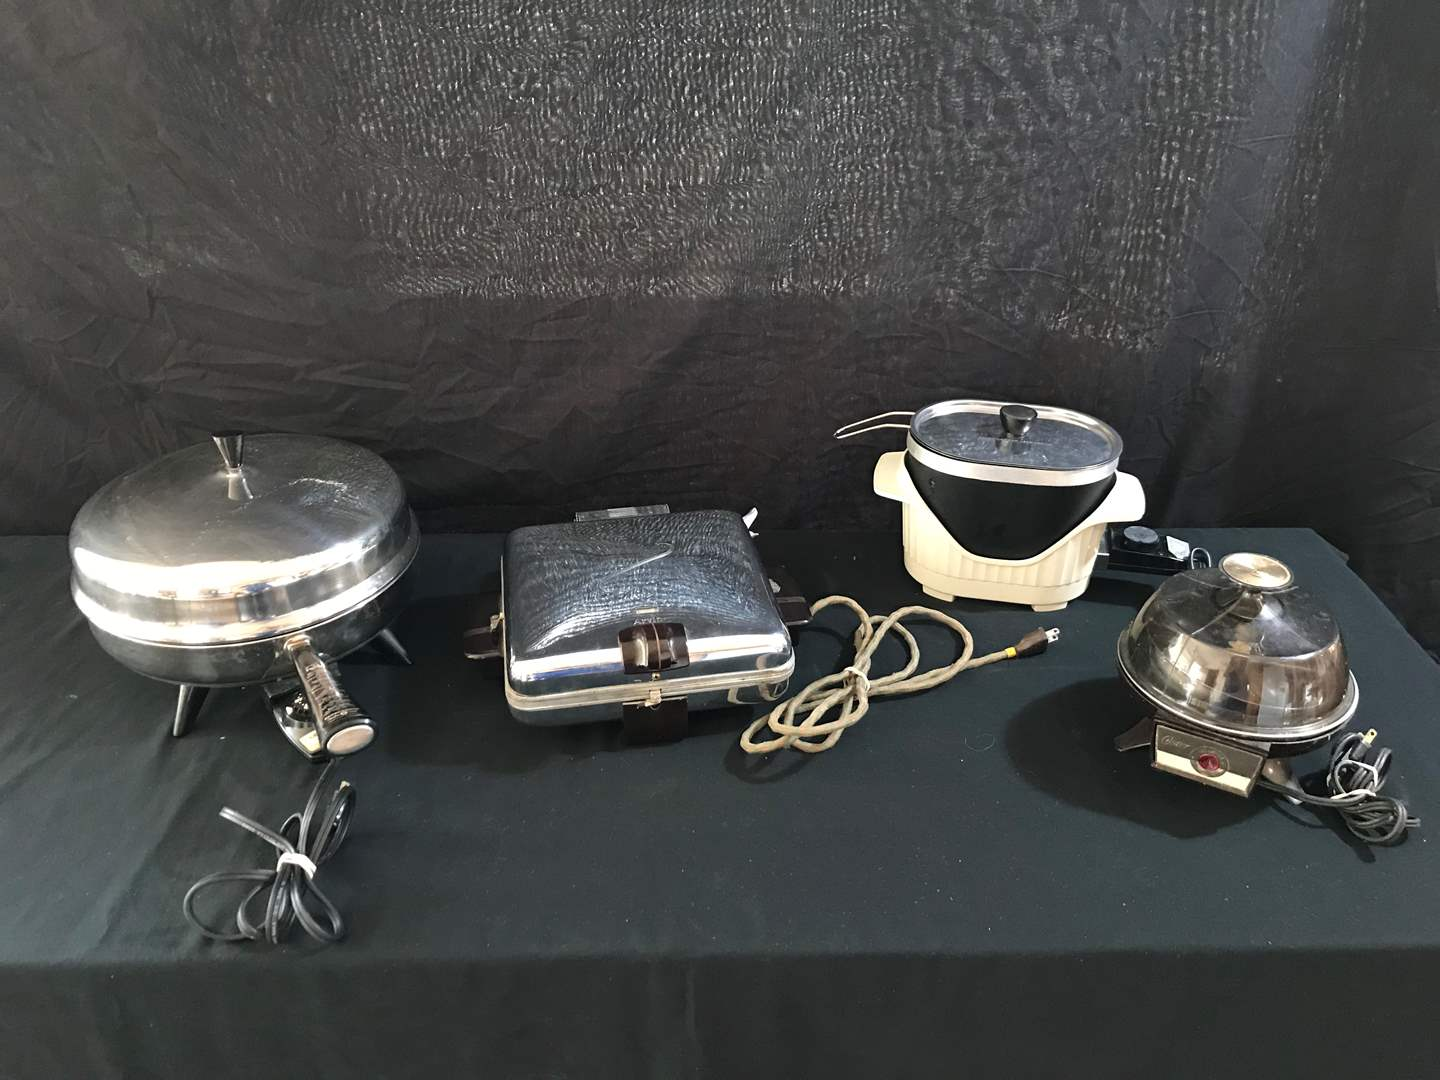 Lot # 52 - Farberware Electric Frying Pan, Arvin Waffle Maker, Oster Egg Cooker, Nordic Ware Electric Multi-Fri-Cook (main image)